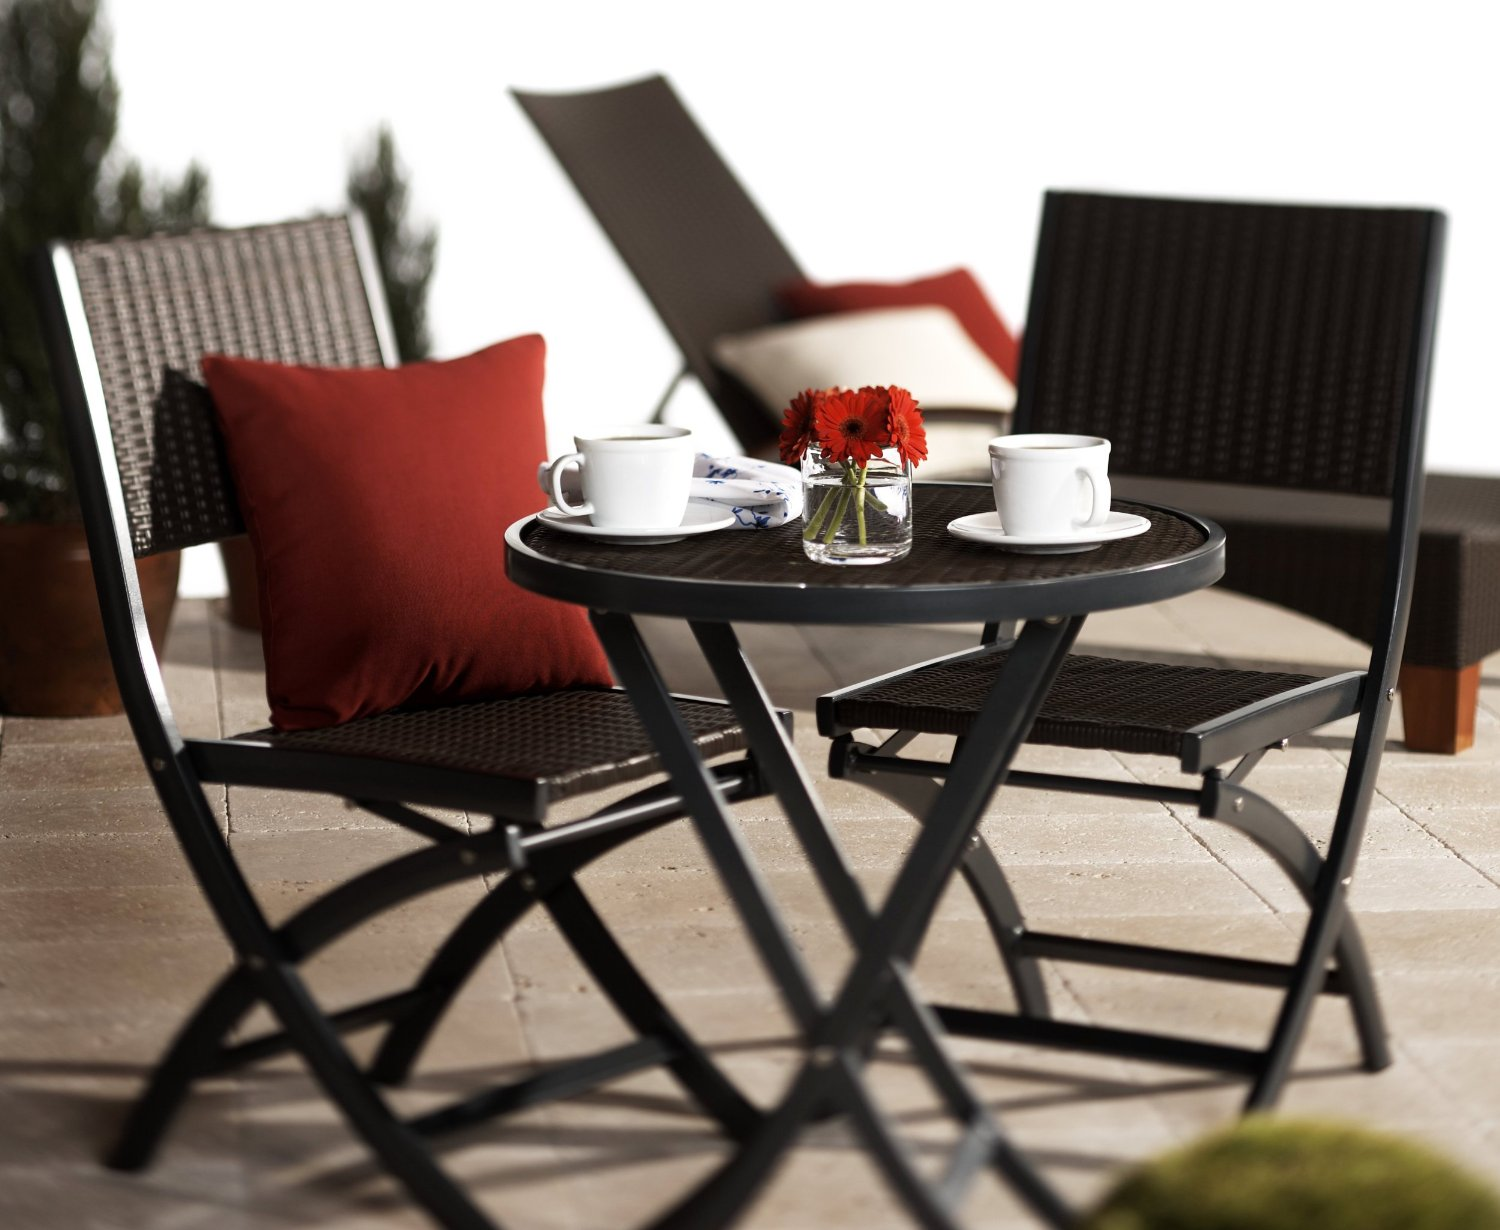 cover tables furniture chairs wicker set round outdoor patio table good looking clearance dining small sets rectangular for aluminum woven accent full size console with baskets